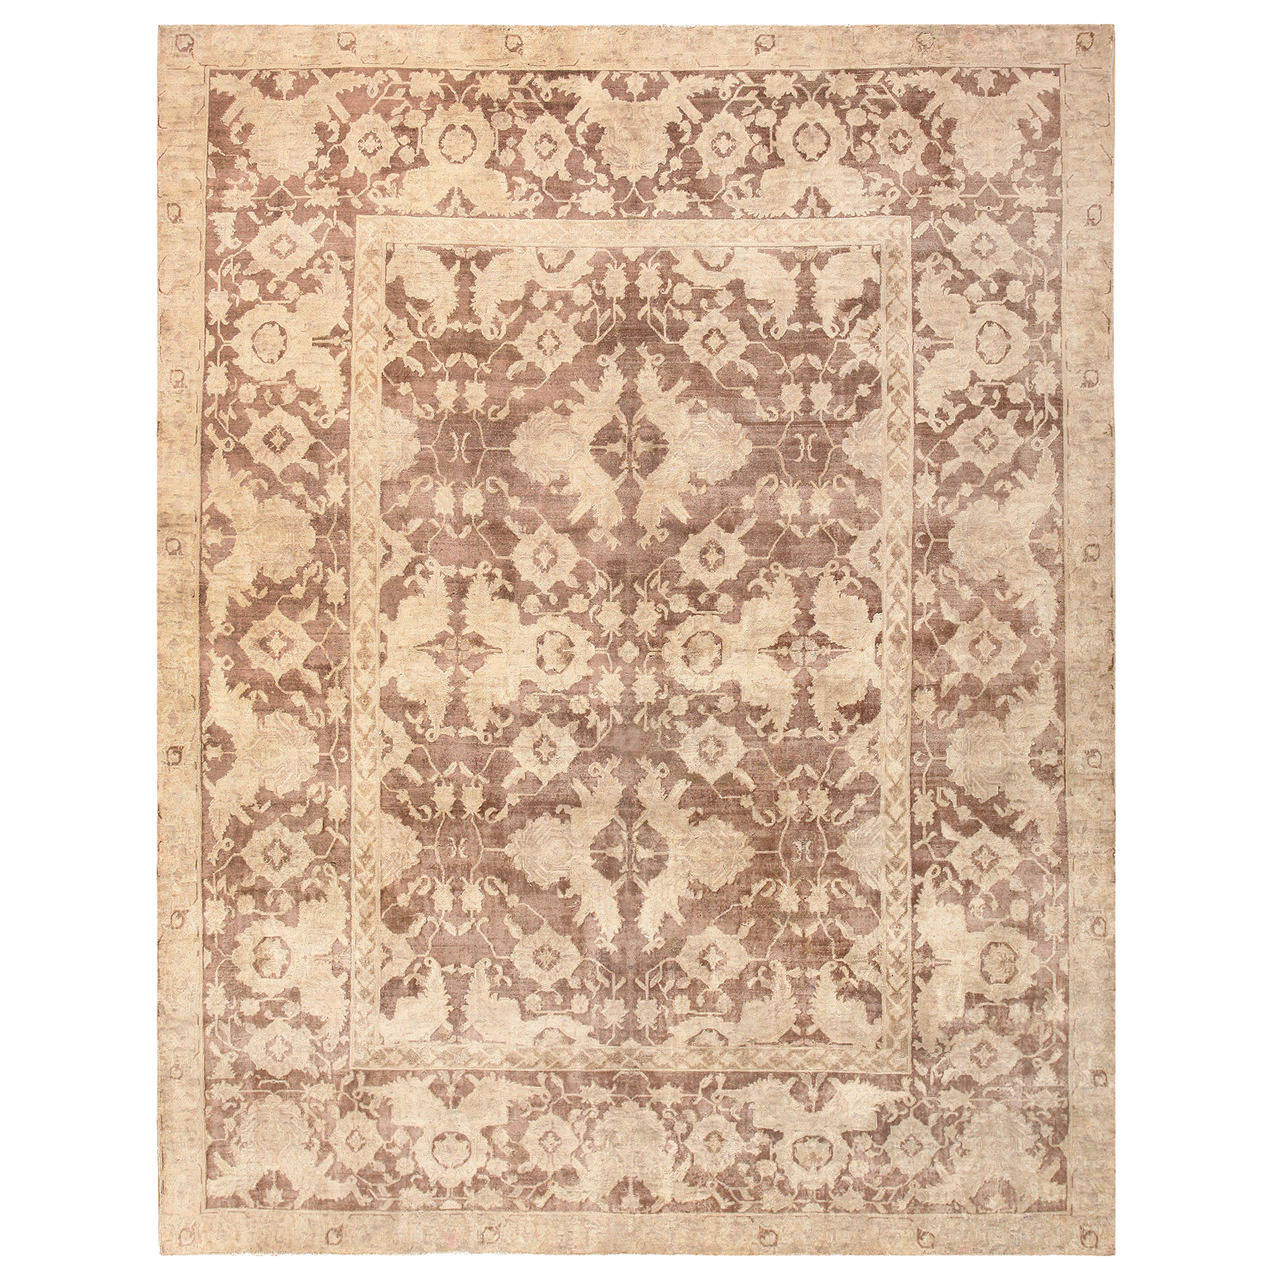 Antique Indian Agra Rug For Sale At 1stdibs: Antique Room Sized Indian Agra Rug For Sale At 1stdibs